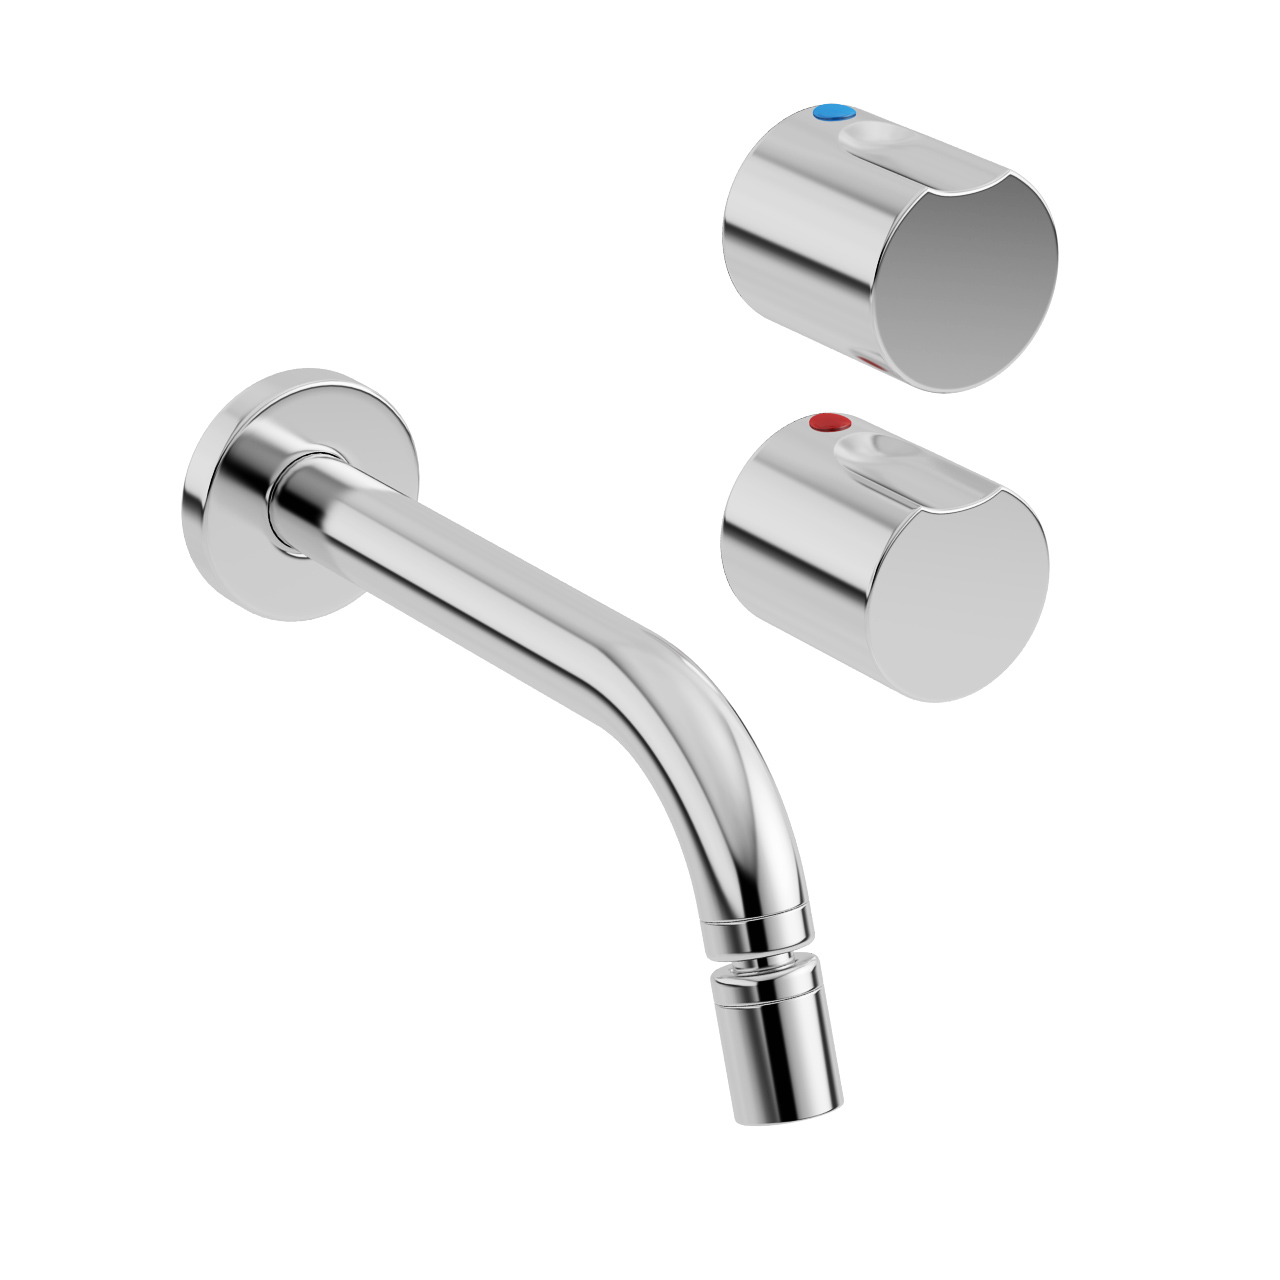 Element Wall-mounted Bidet Mixer Tap by Roca